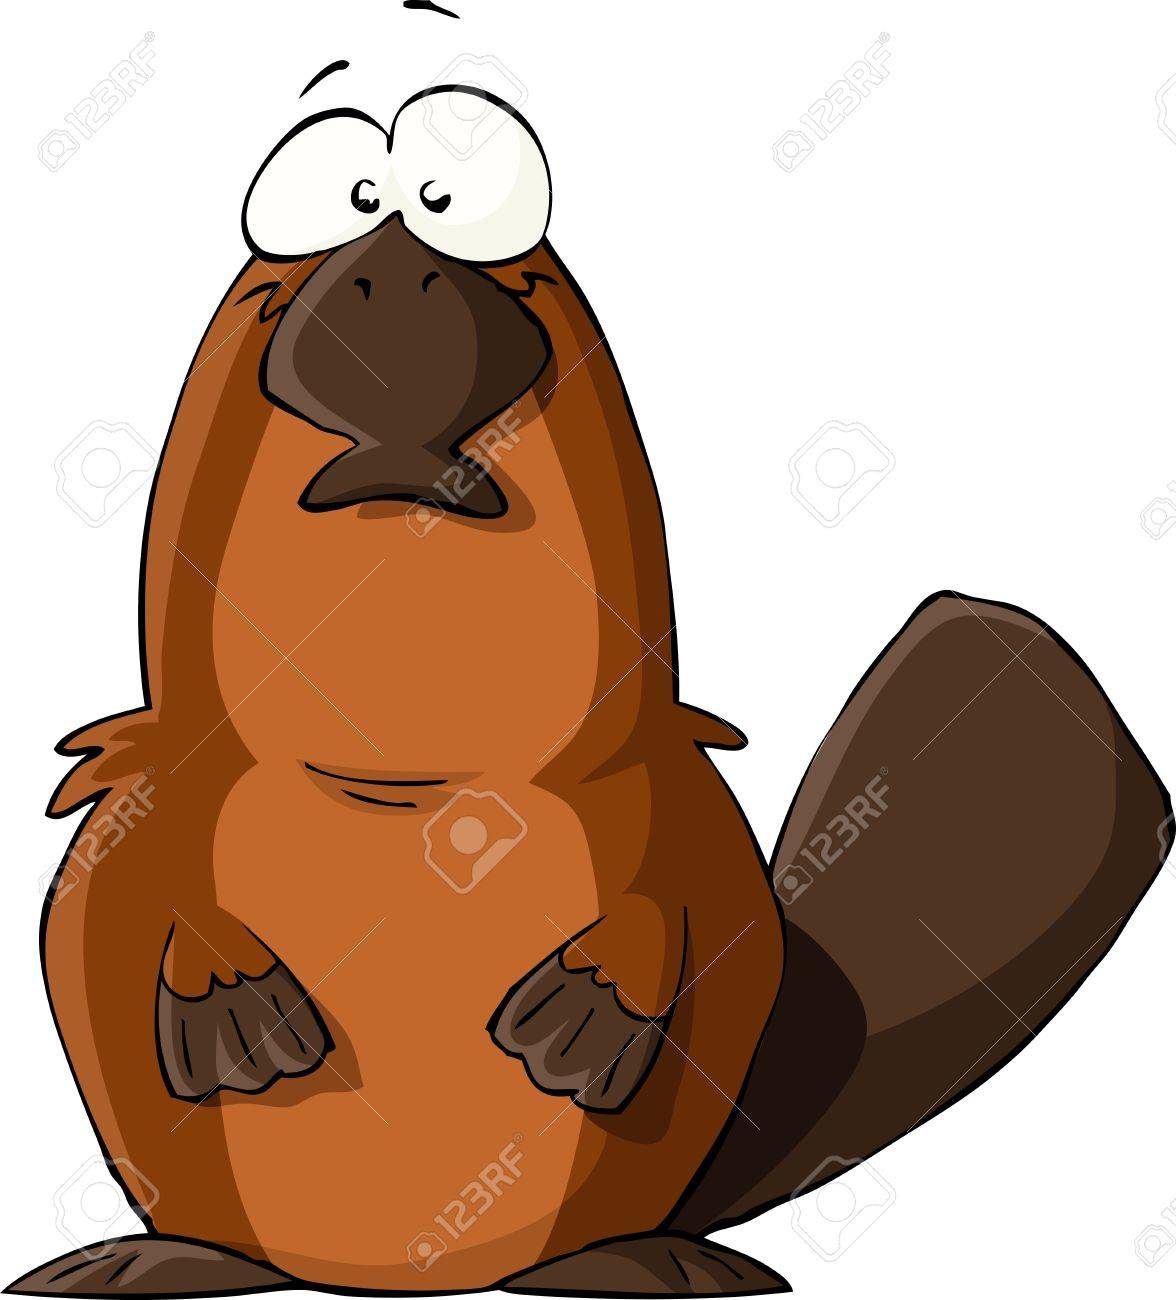 Platypus on a white background, vector illustration Stock Vector - 11182431